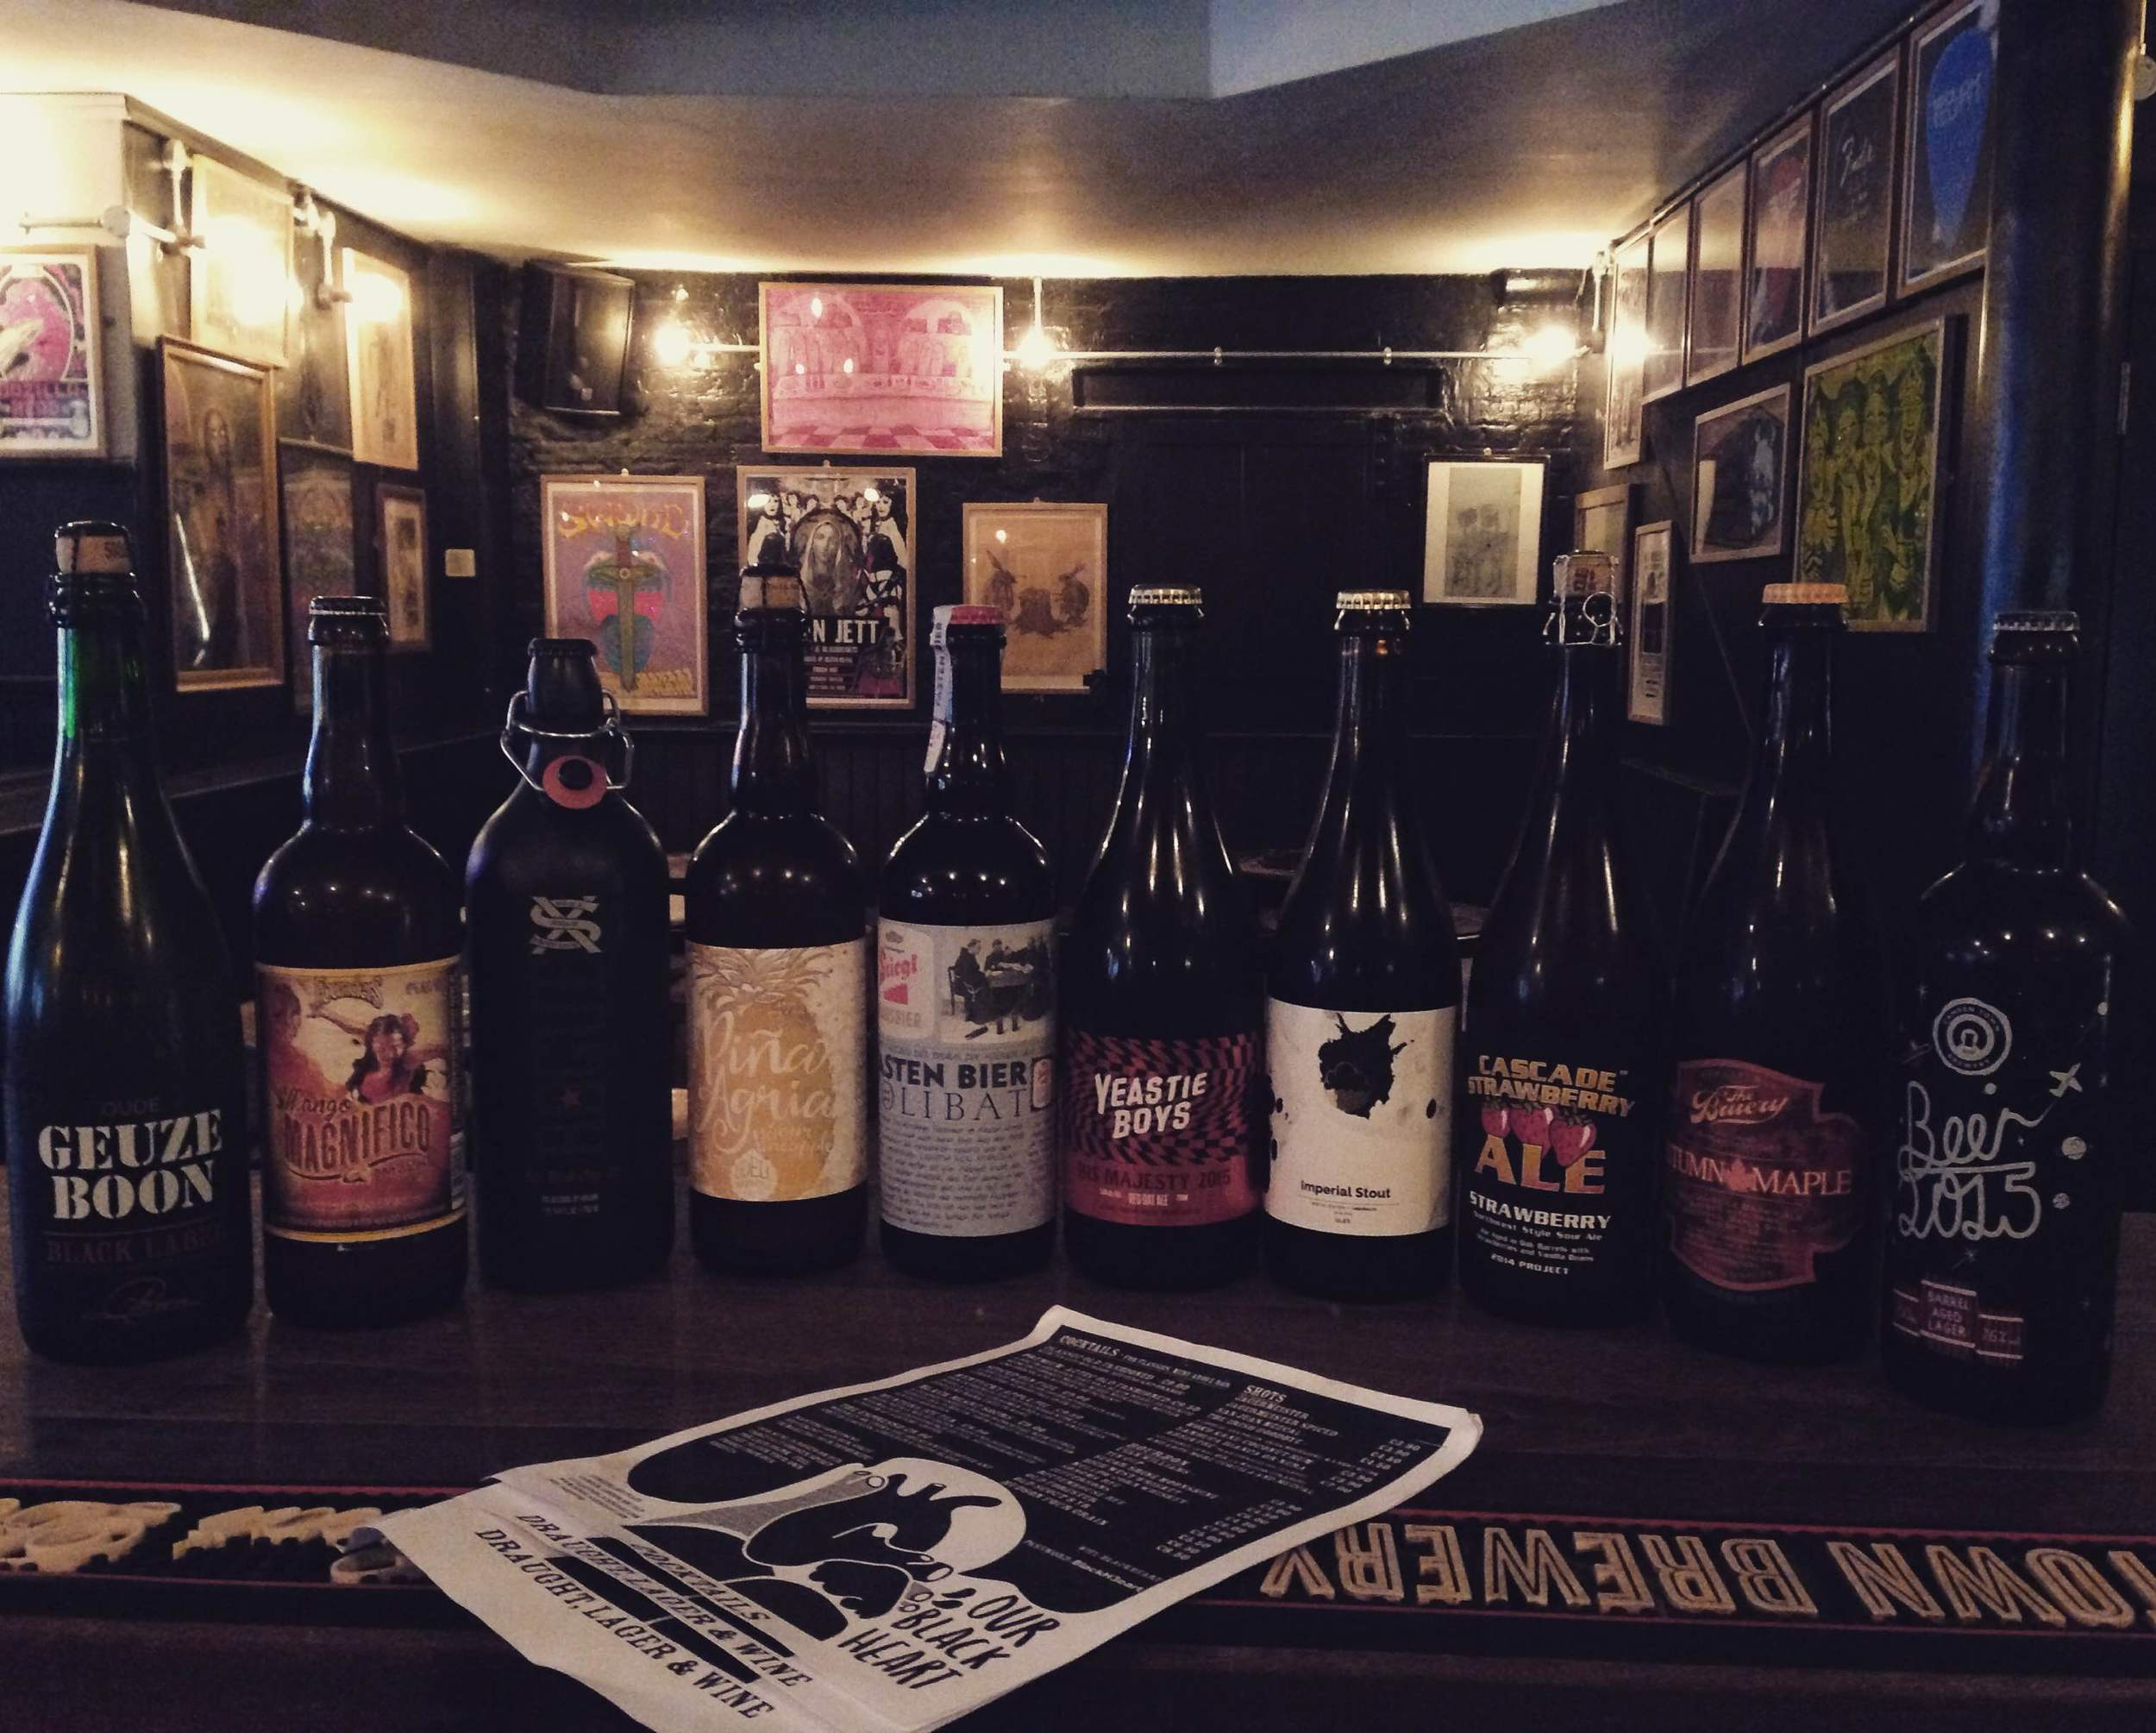 �Oude Geuze Black Label by Boon is a gueuze �Mango Magnifico by Founders is a mango ale with a hint of habanero �XS Dead Guy Ale by Rogue �Piña Agria by Odell is a pineapple sour beer �Zolibat by Stiegl is a German beer �His Majesty by Yeastie Boys is a red oat ale �Hibernate by Cloudwater Brewery is an imperial stout �Strawberry Ale by Cascade is a strawberry sour ale �Autumn Maple by The Bruery is a Belgian style brown ale �Beer 2015! by Camden Town Brewery is a barrel aged lager